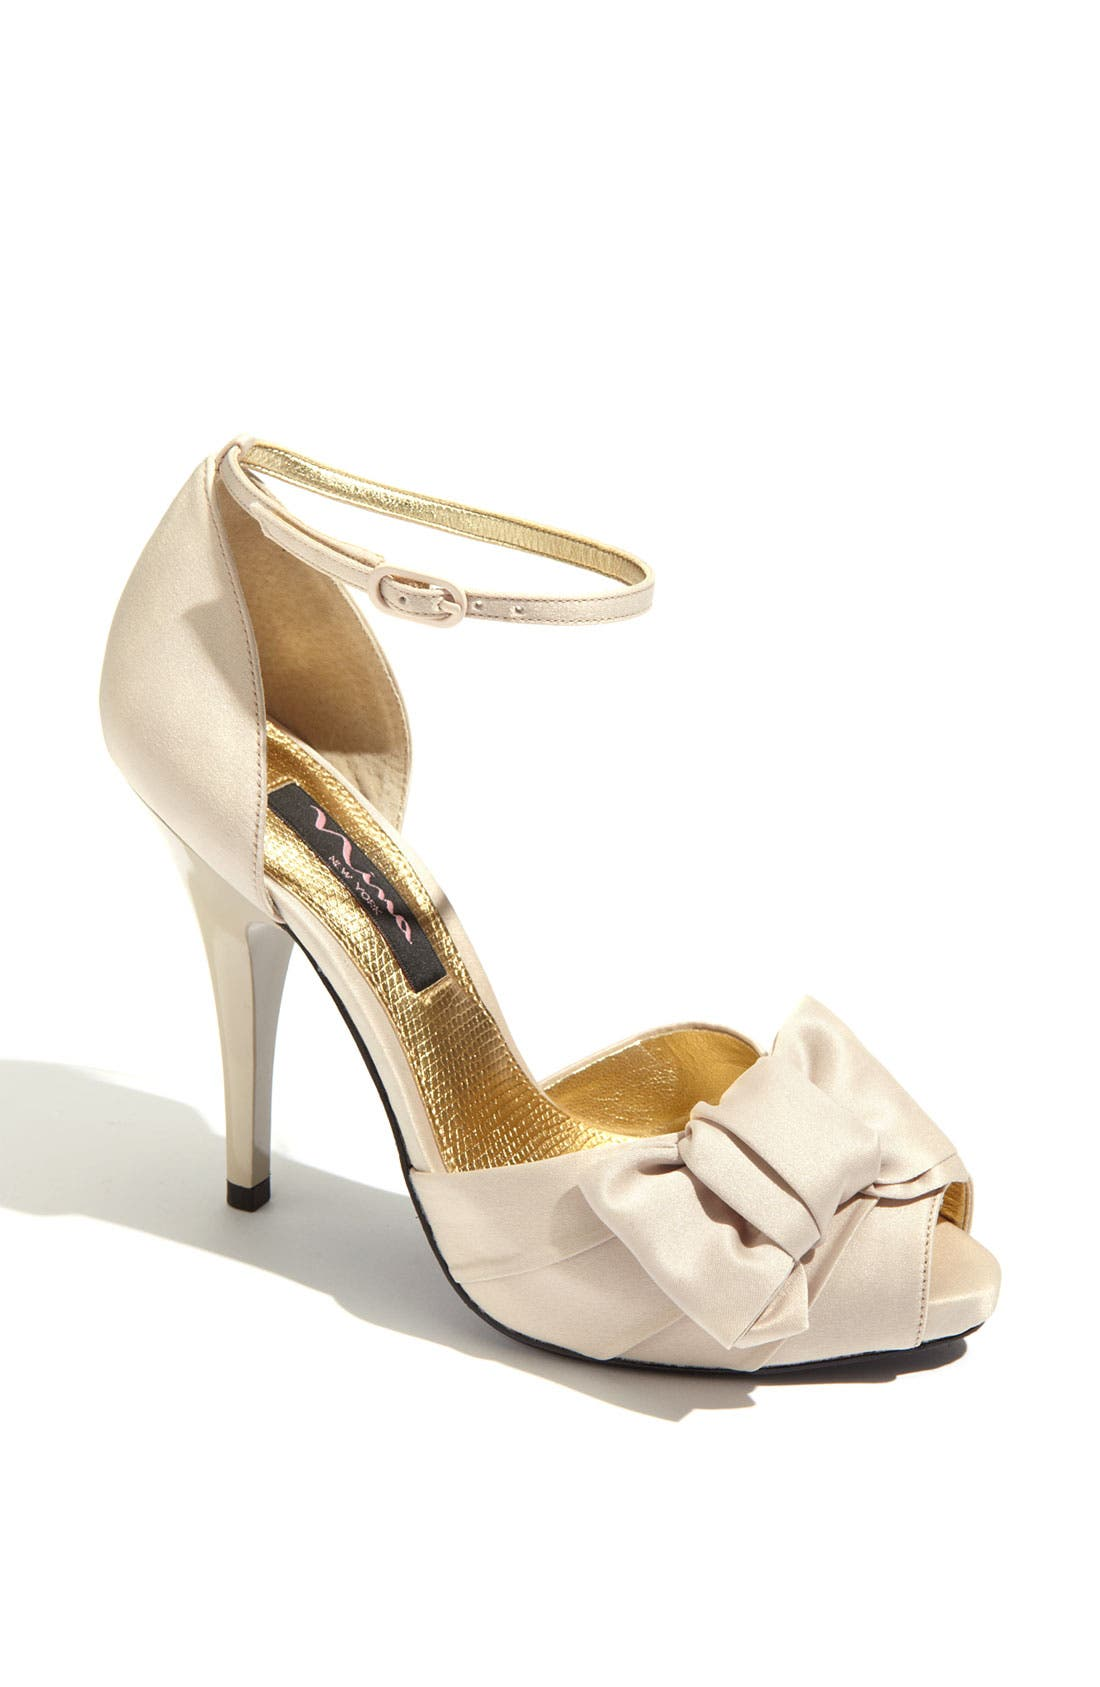 Alternate Image 1 Selected - Nina 'Electra' Sandal (Online Only)